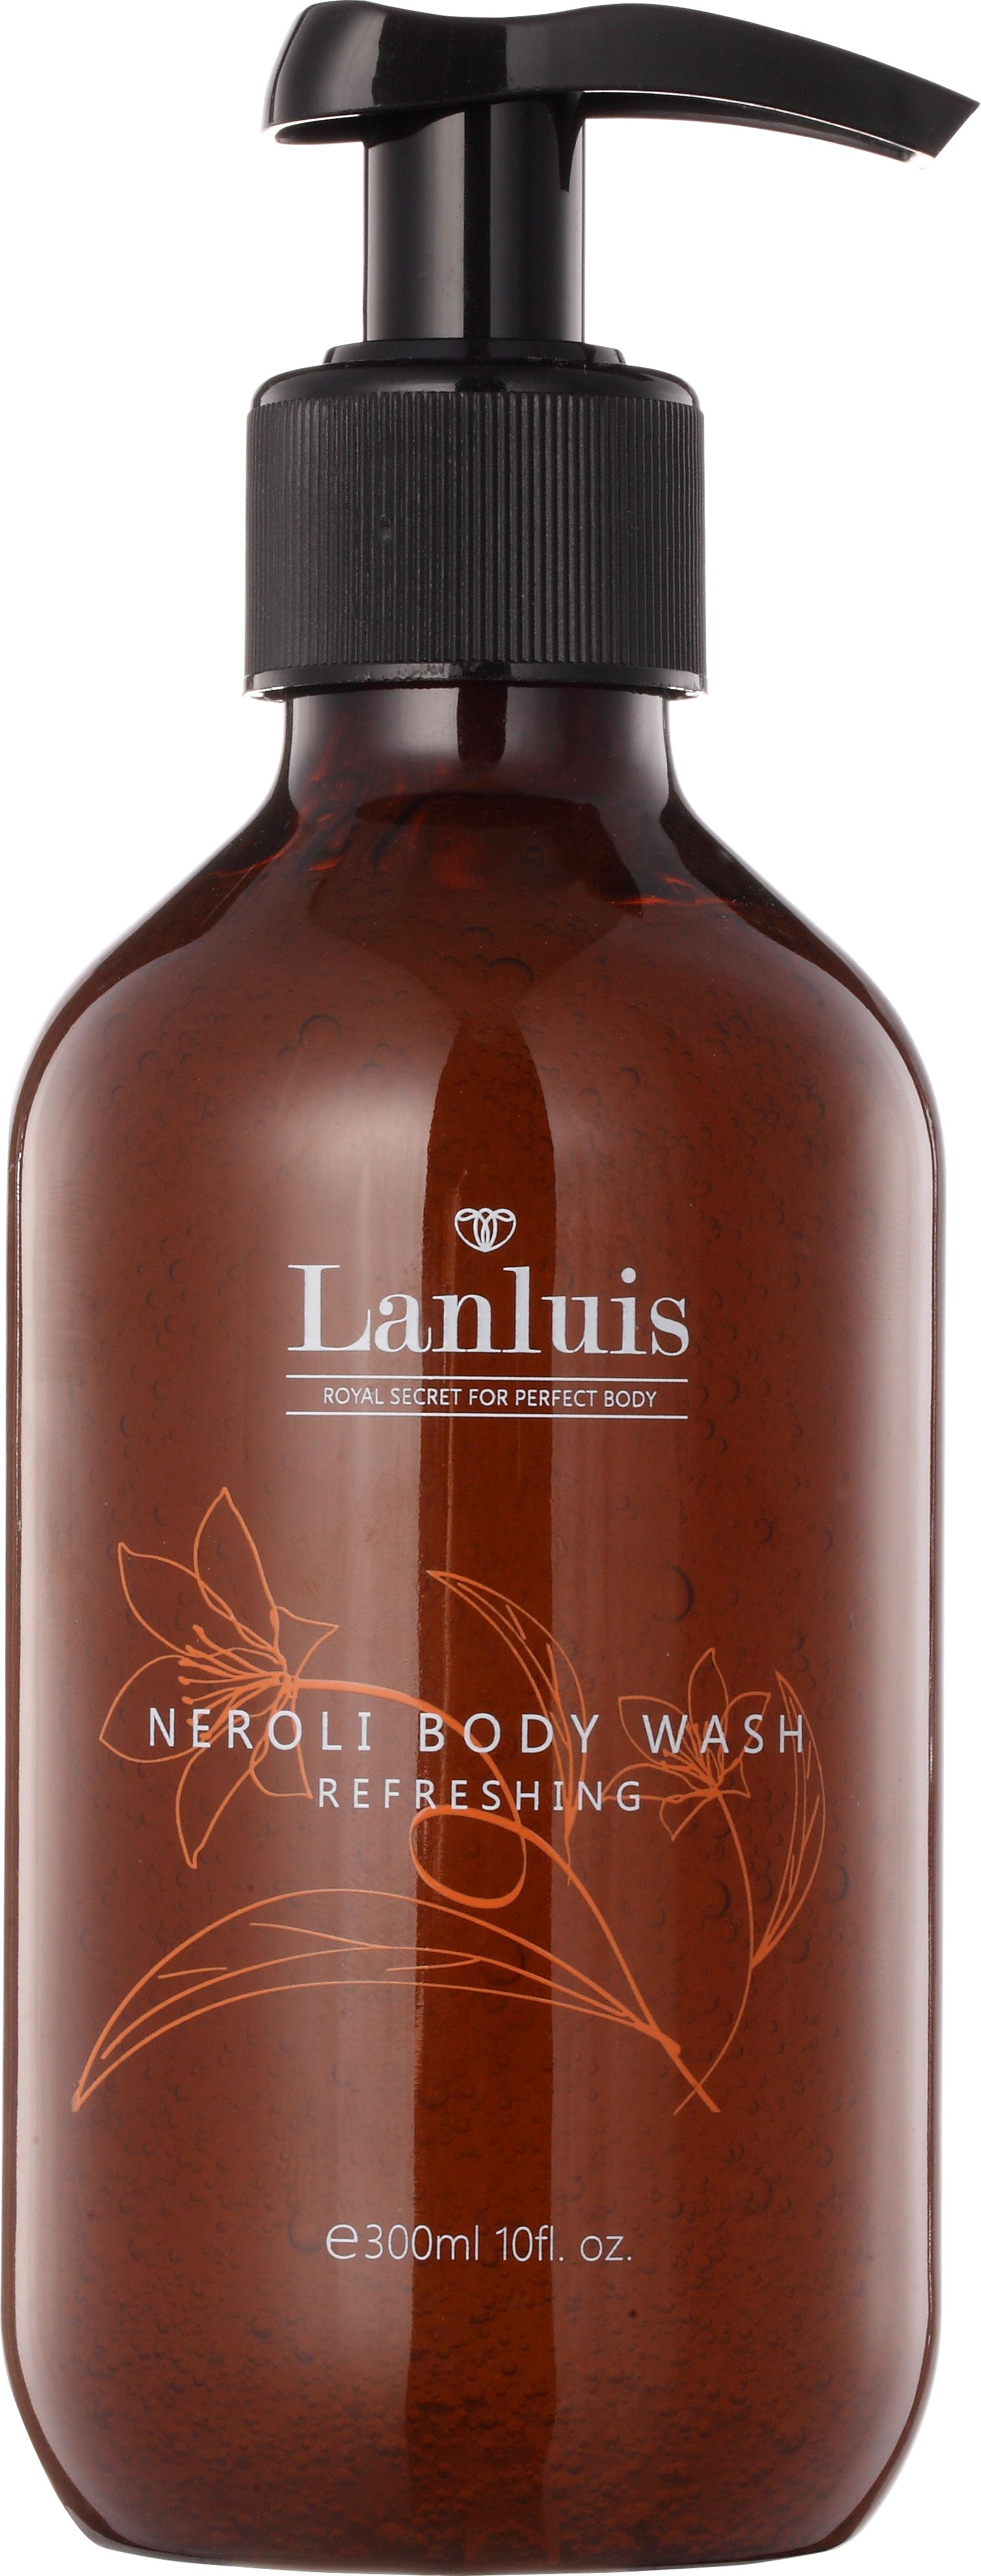 Neroli Body Wash - Refreshing